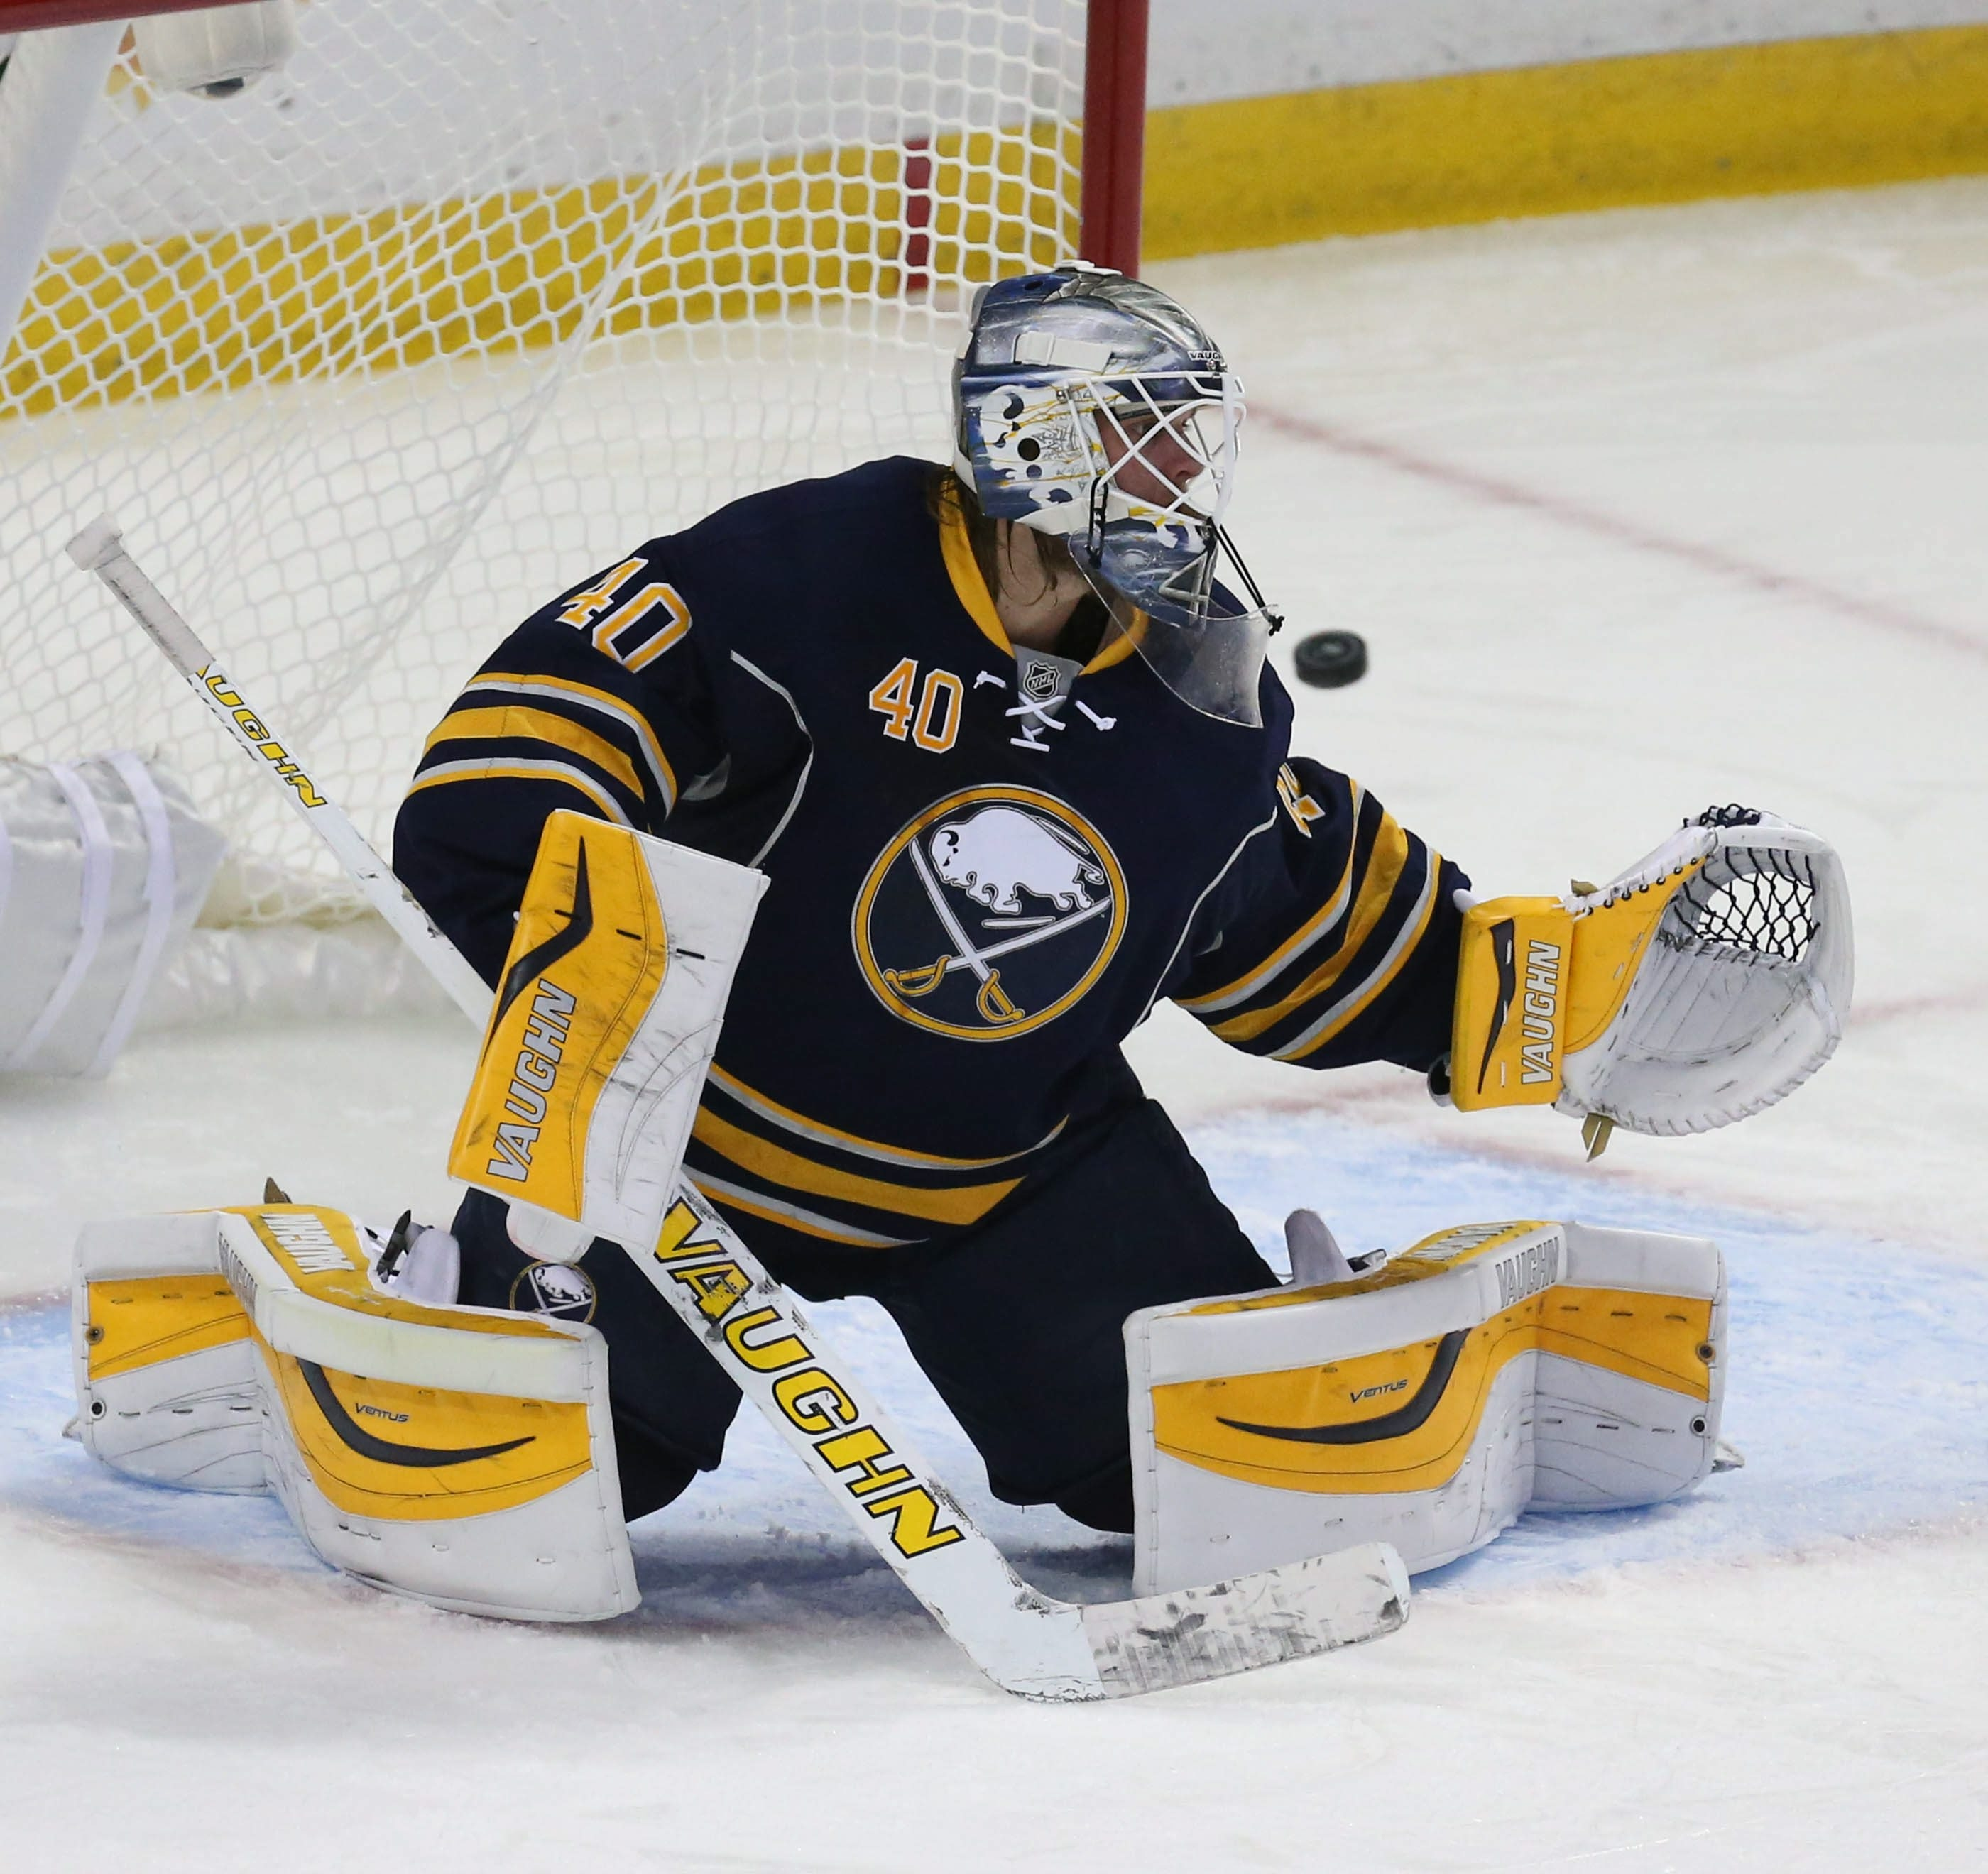 While with the Ottawa Senators in 2015, Robin Lehner was barreled into by a teammate and suffered a concussion. The effects lasted for five months.